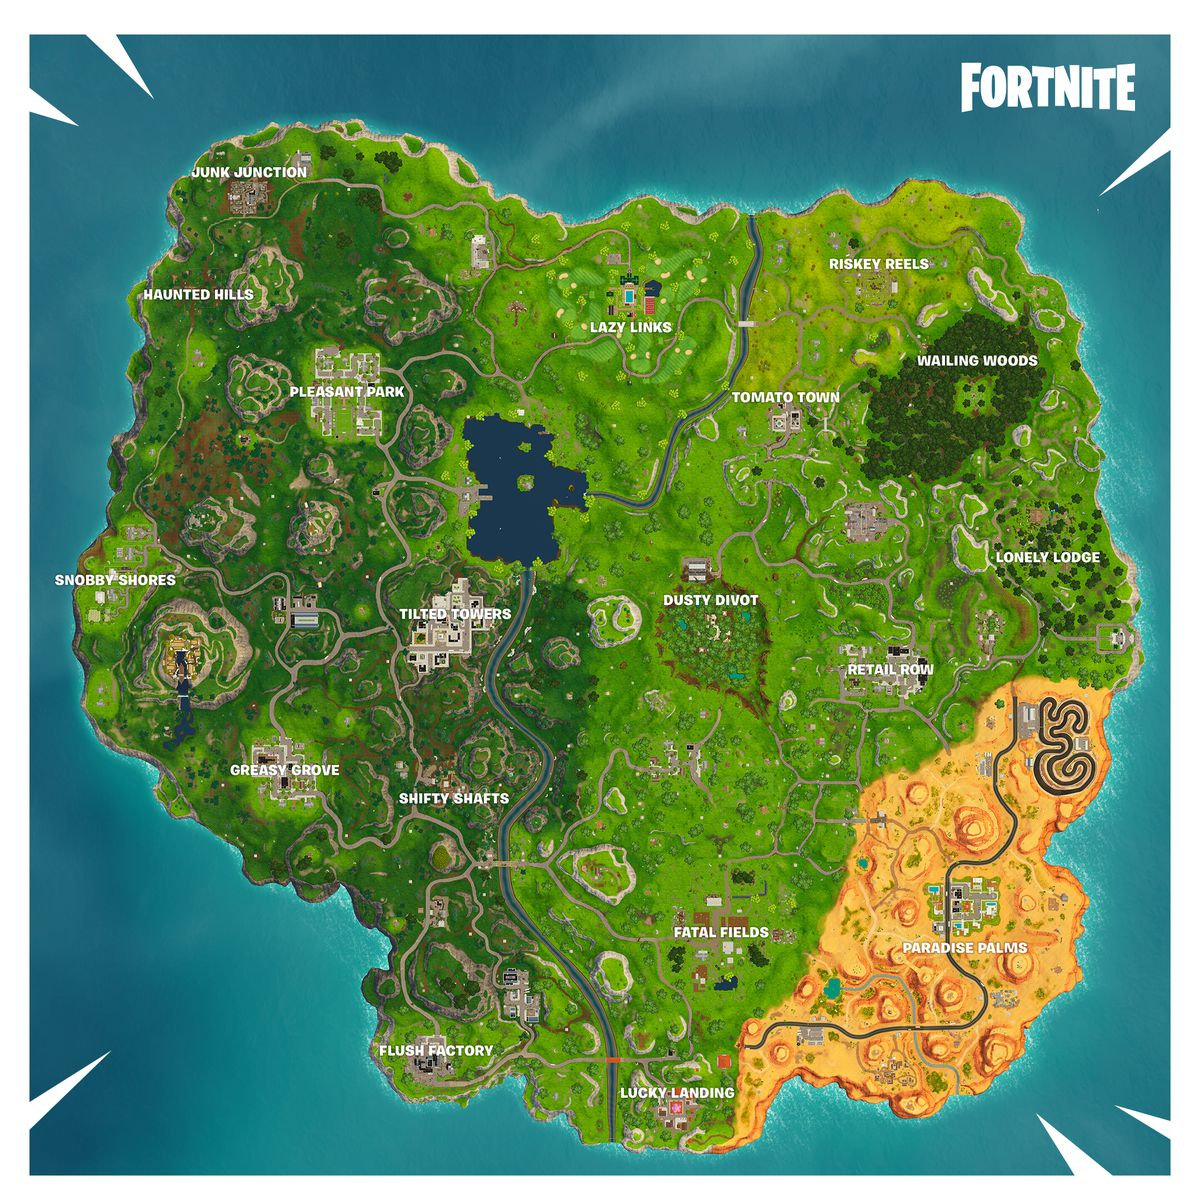 Fortnite_patch_notes_v5_0_BR04_Social_Minimap_Names_2160x2160_3af6c1cdb38bbd31b2ac1fbf5508a3b81f351c1d_1_.jpg